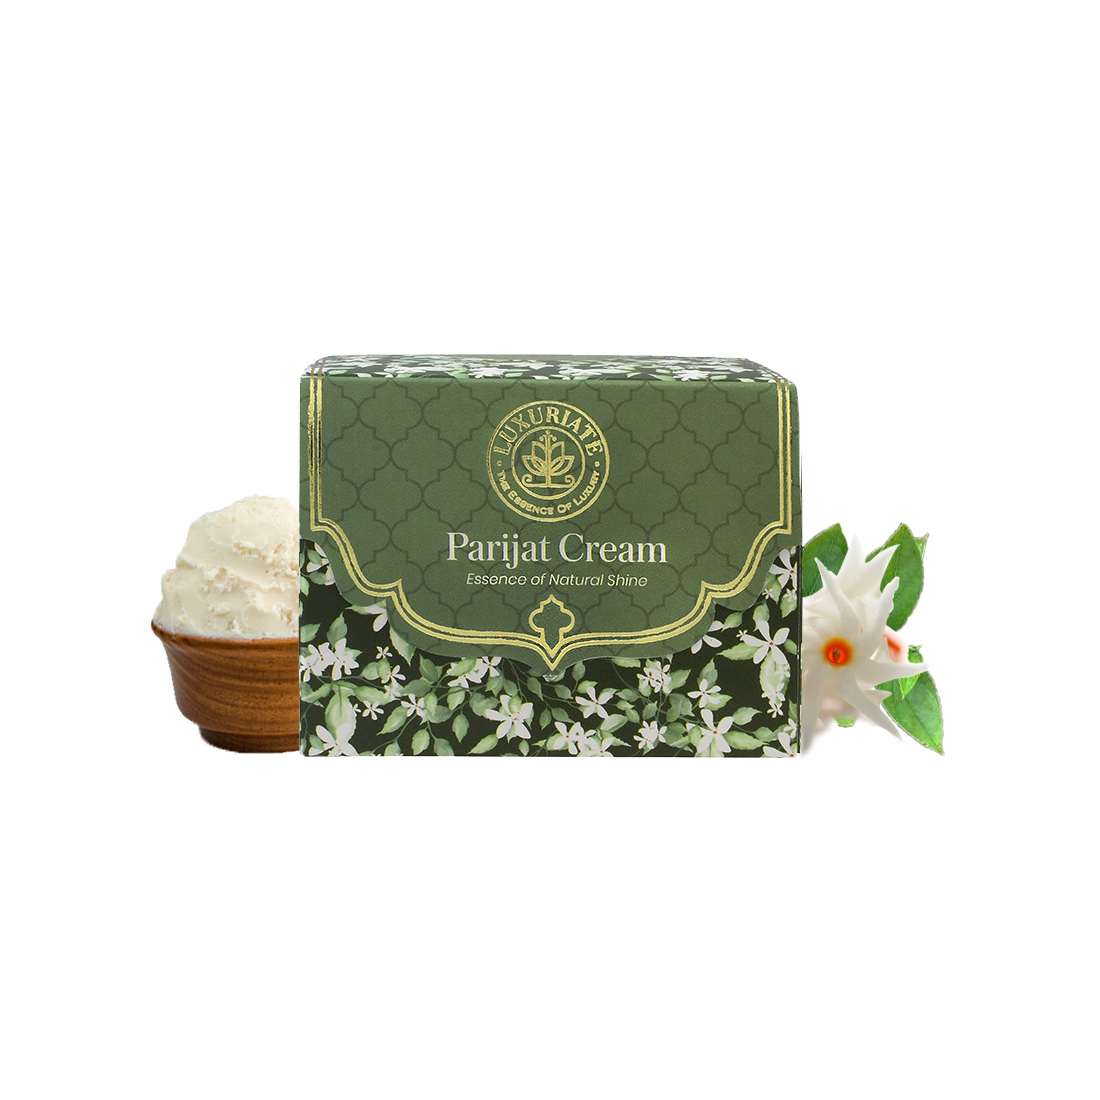 LUXURIATE Natural Parijat  Essence of Natural Shine Moisturizer Cream with Shea Butter Almond and Parijat Essential Oil Facial Cream for Men and Women, 50 gm